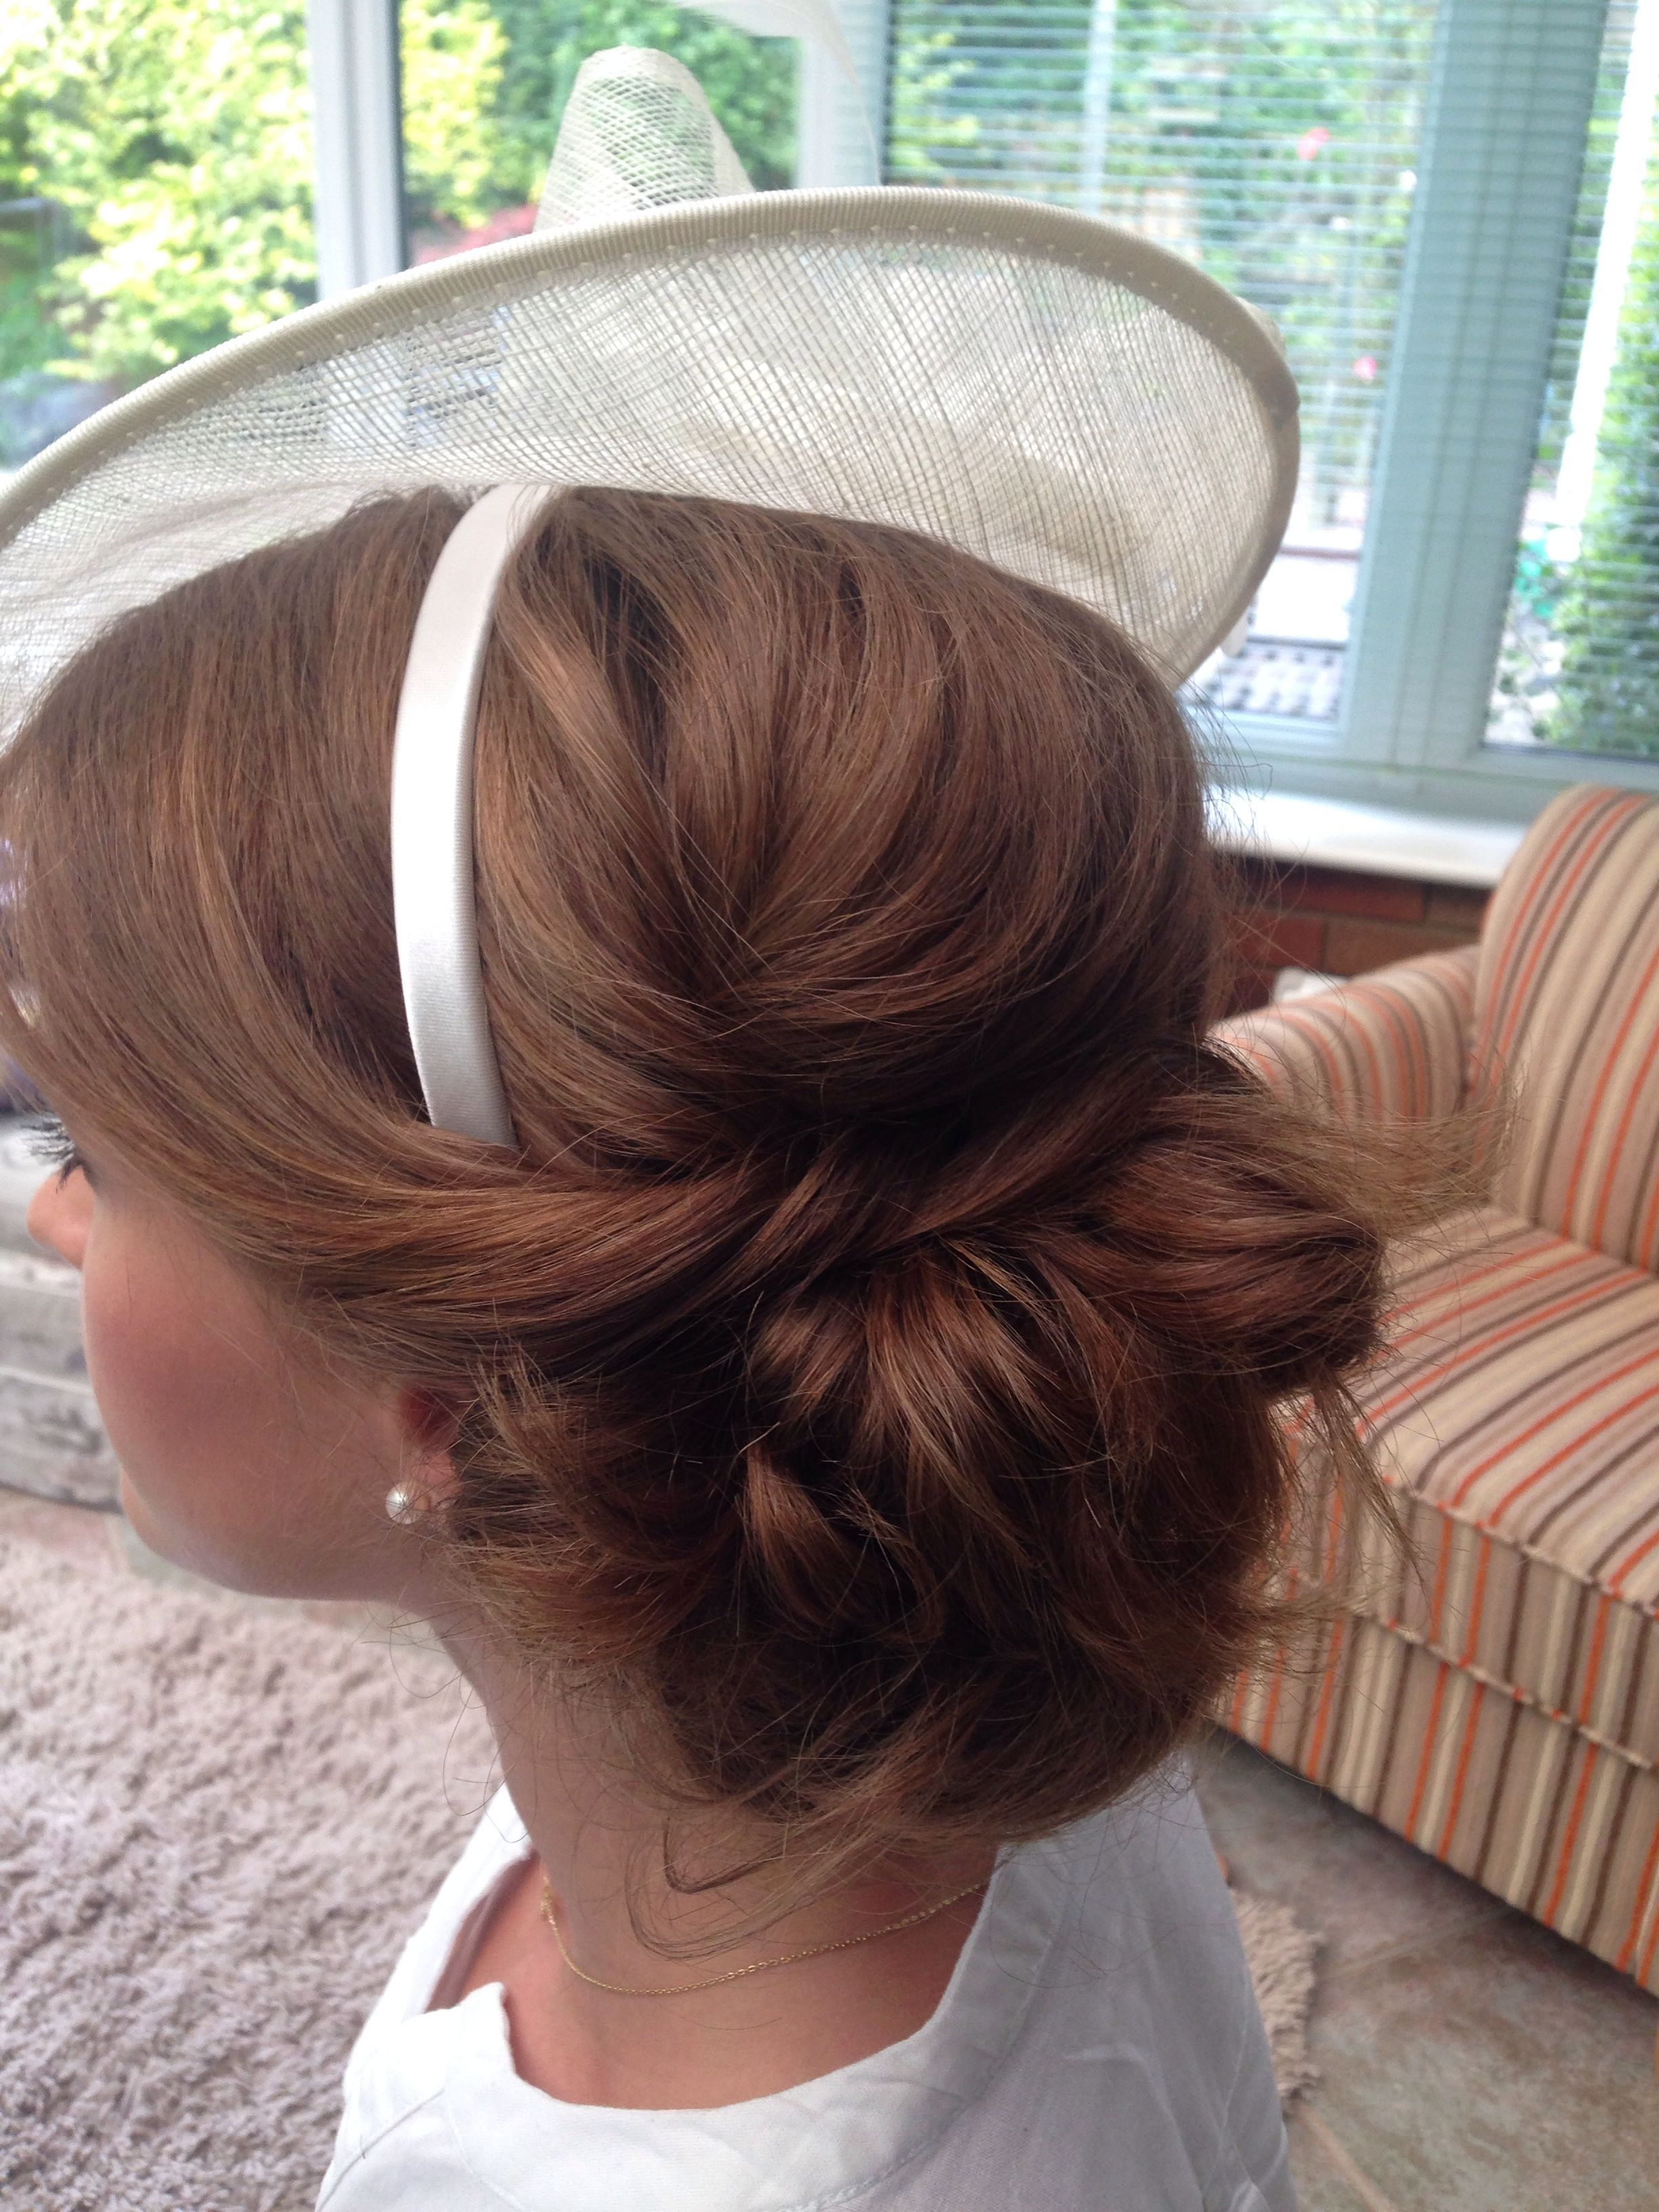 Best Mother Of The Bride Hairstyles Wearing A Hat Or